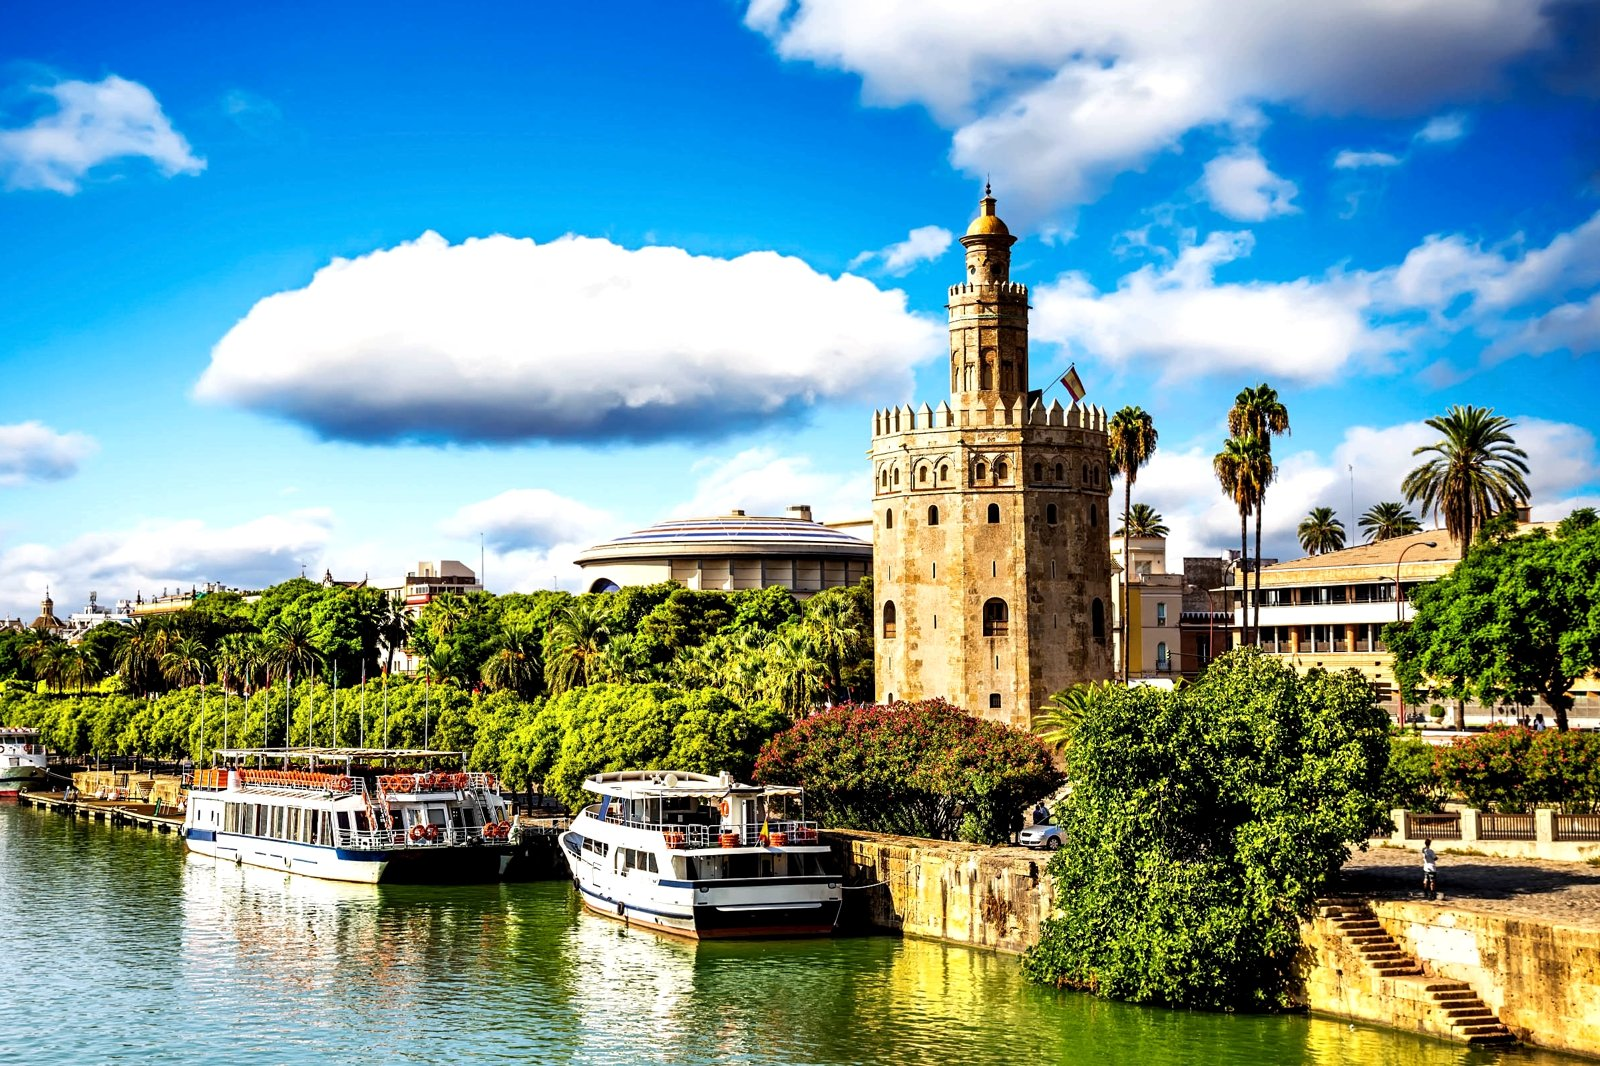 How to ride a river tram in Seville